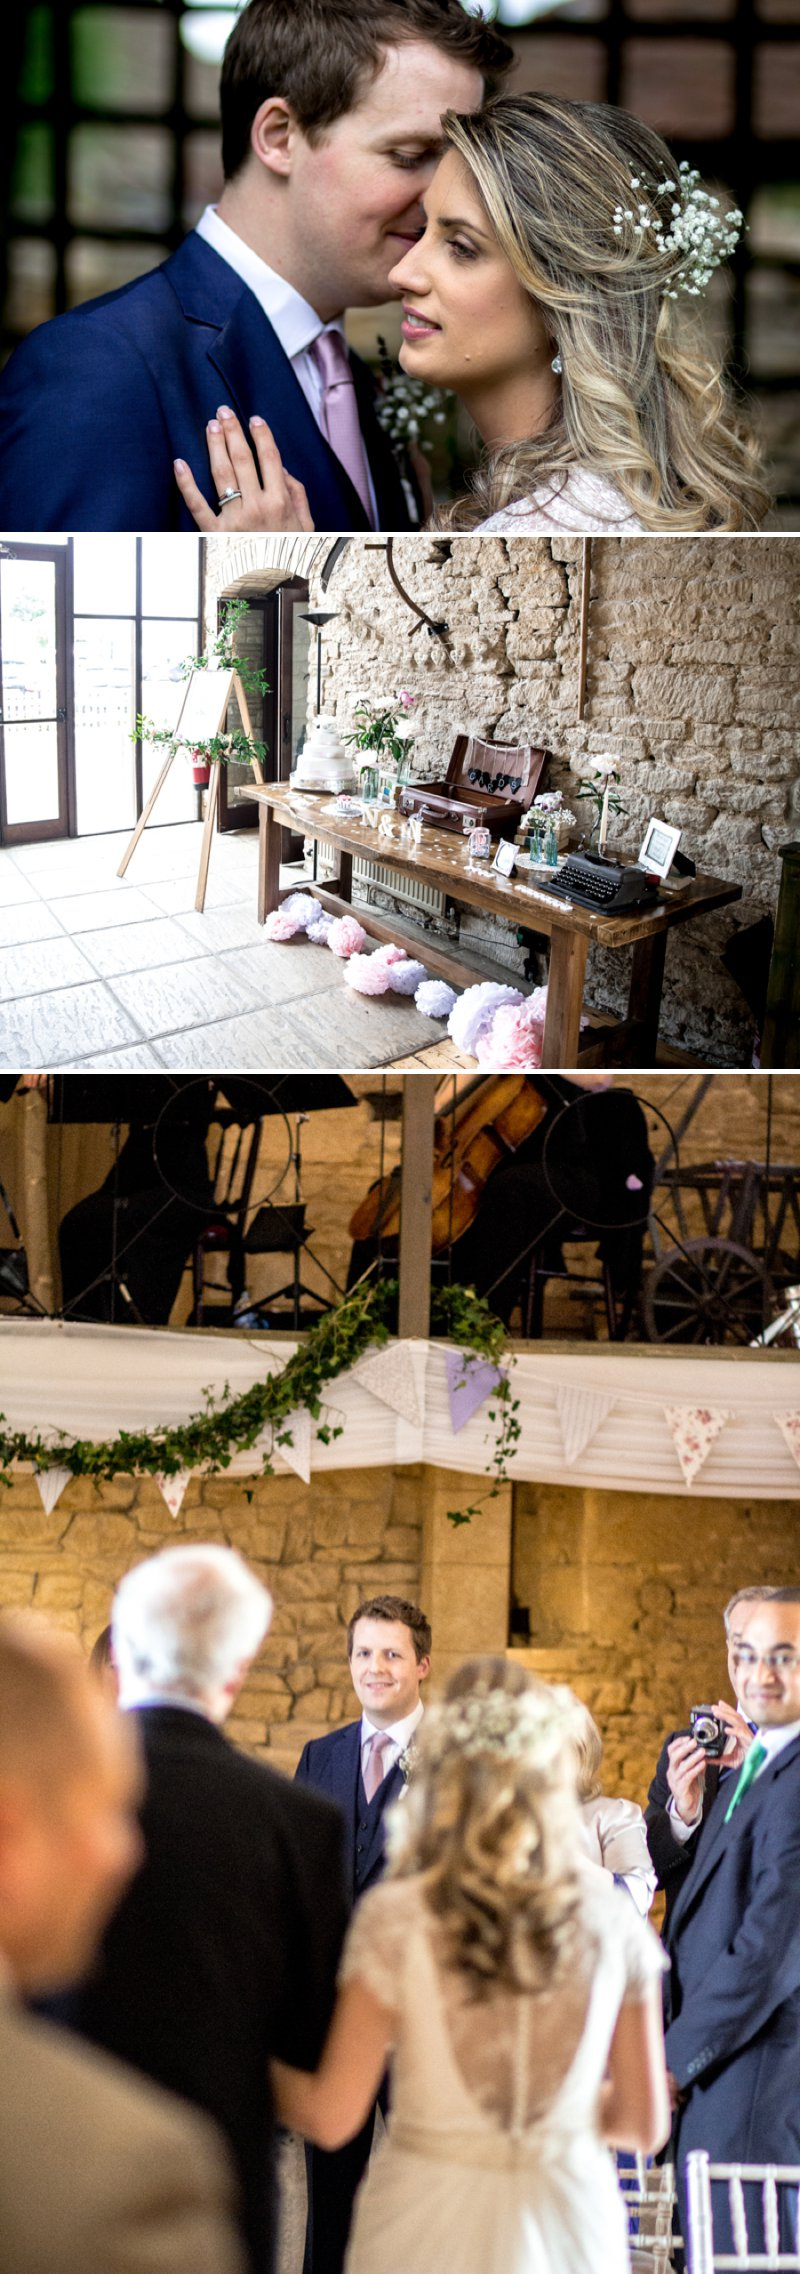 A Pretty Barn Wedding In The Cotswolds At The Great Tythe Barn With Bride In Pronovias And Groom In Reiss With Decor From The Vintage Hire And Images From Richard Jones Photography1 A Taste Of Brazil.